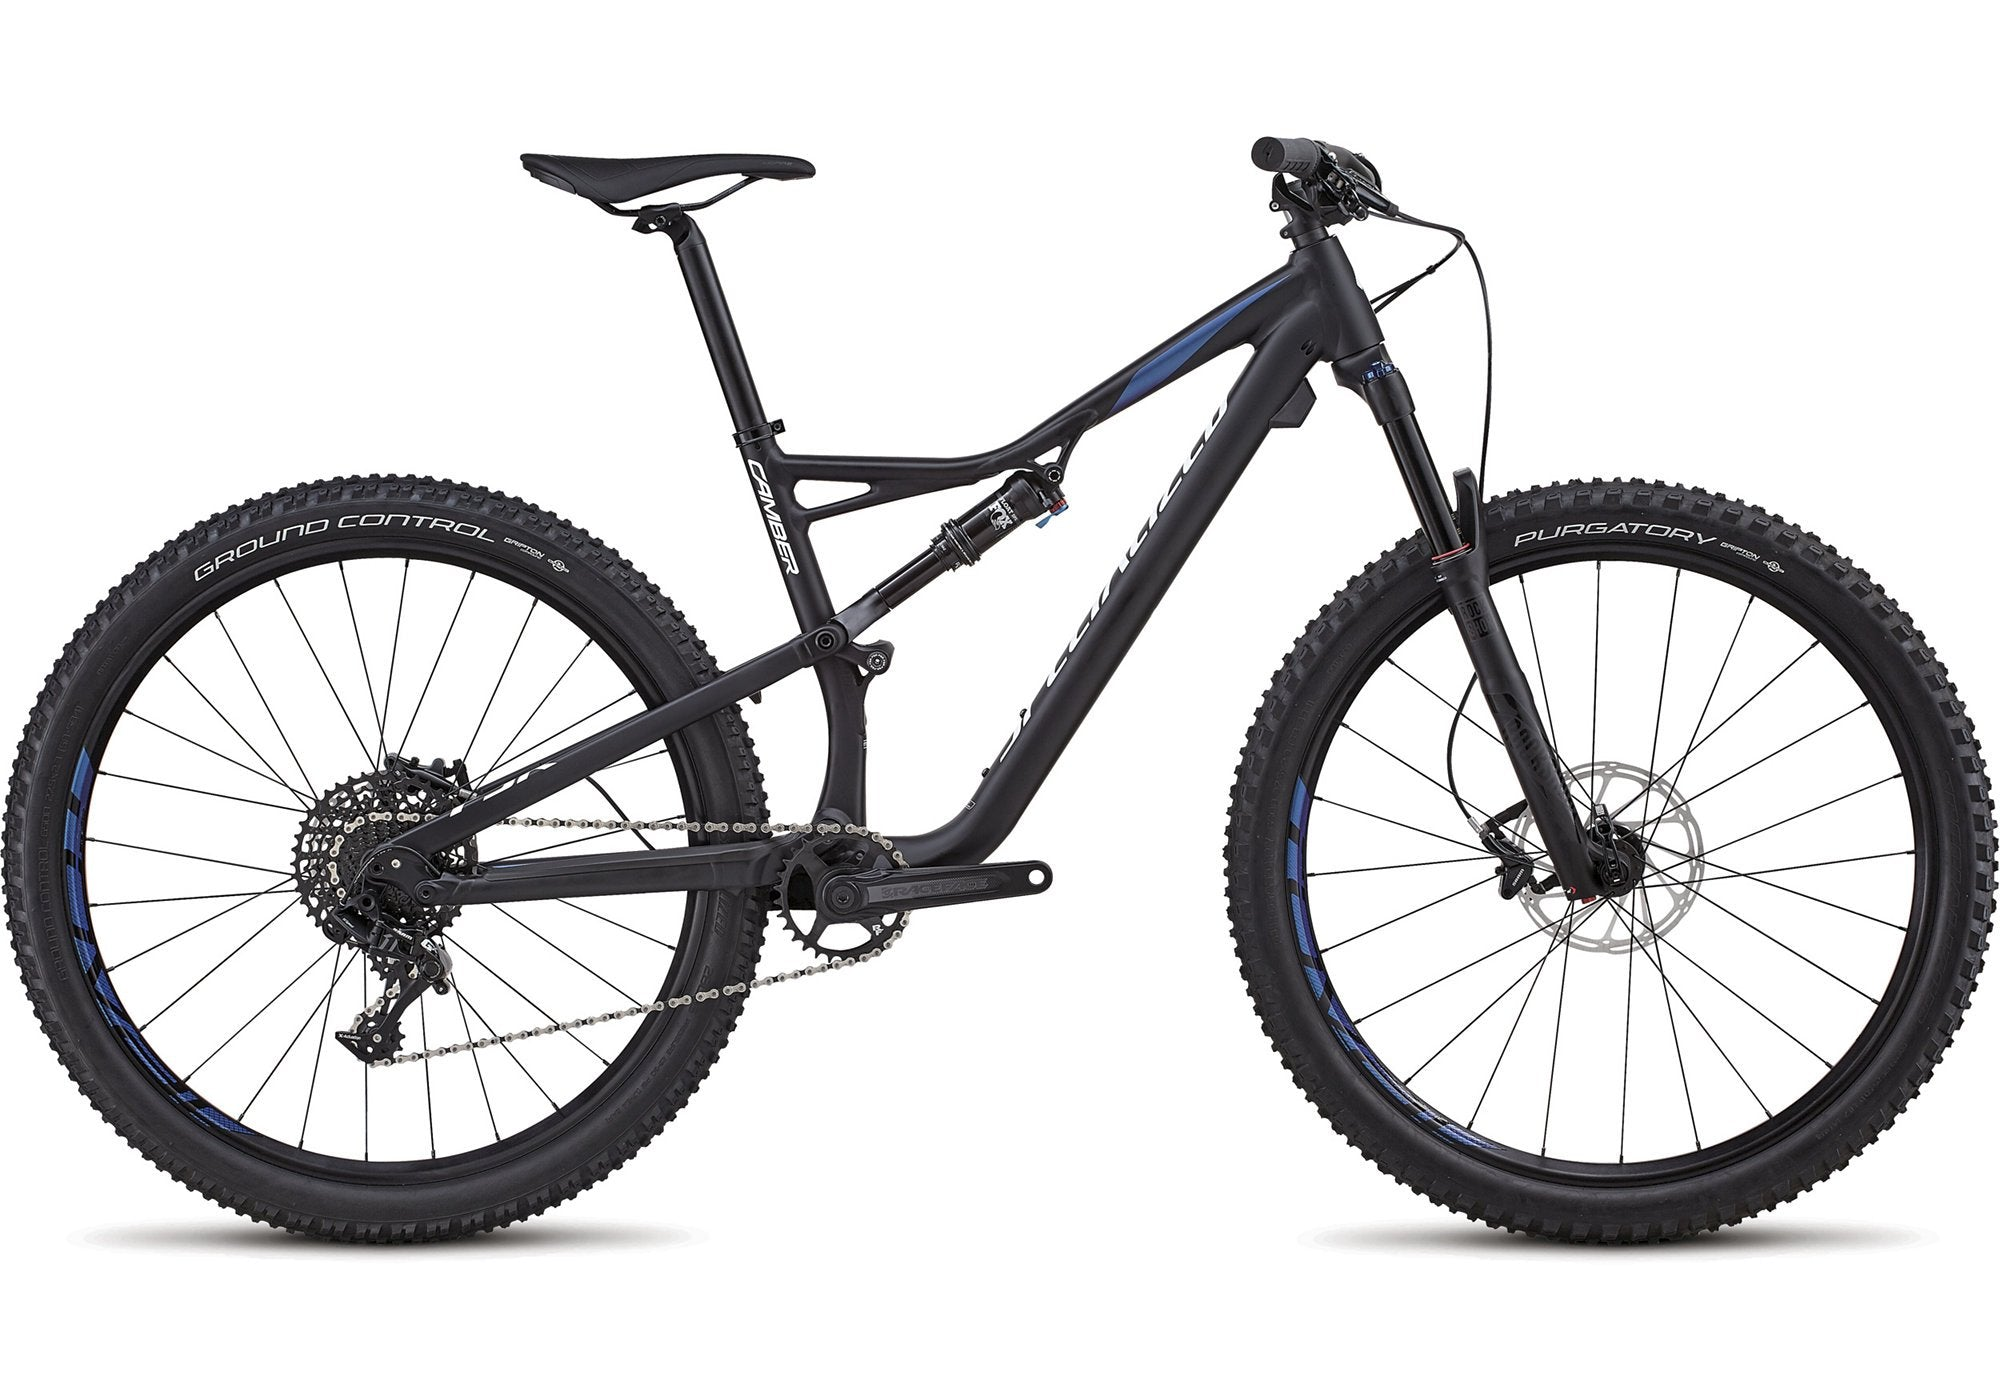 Specialized Camber FSR 27.5 Bike